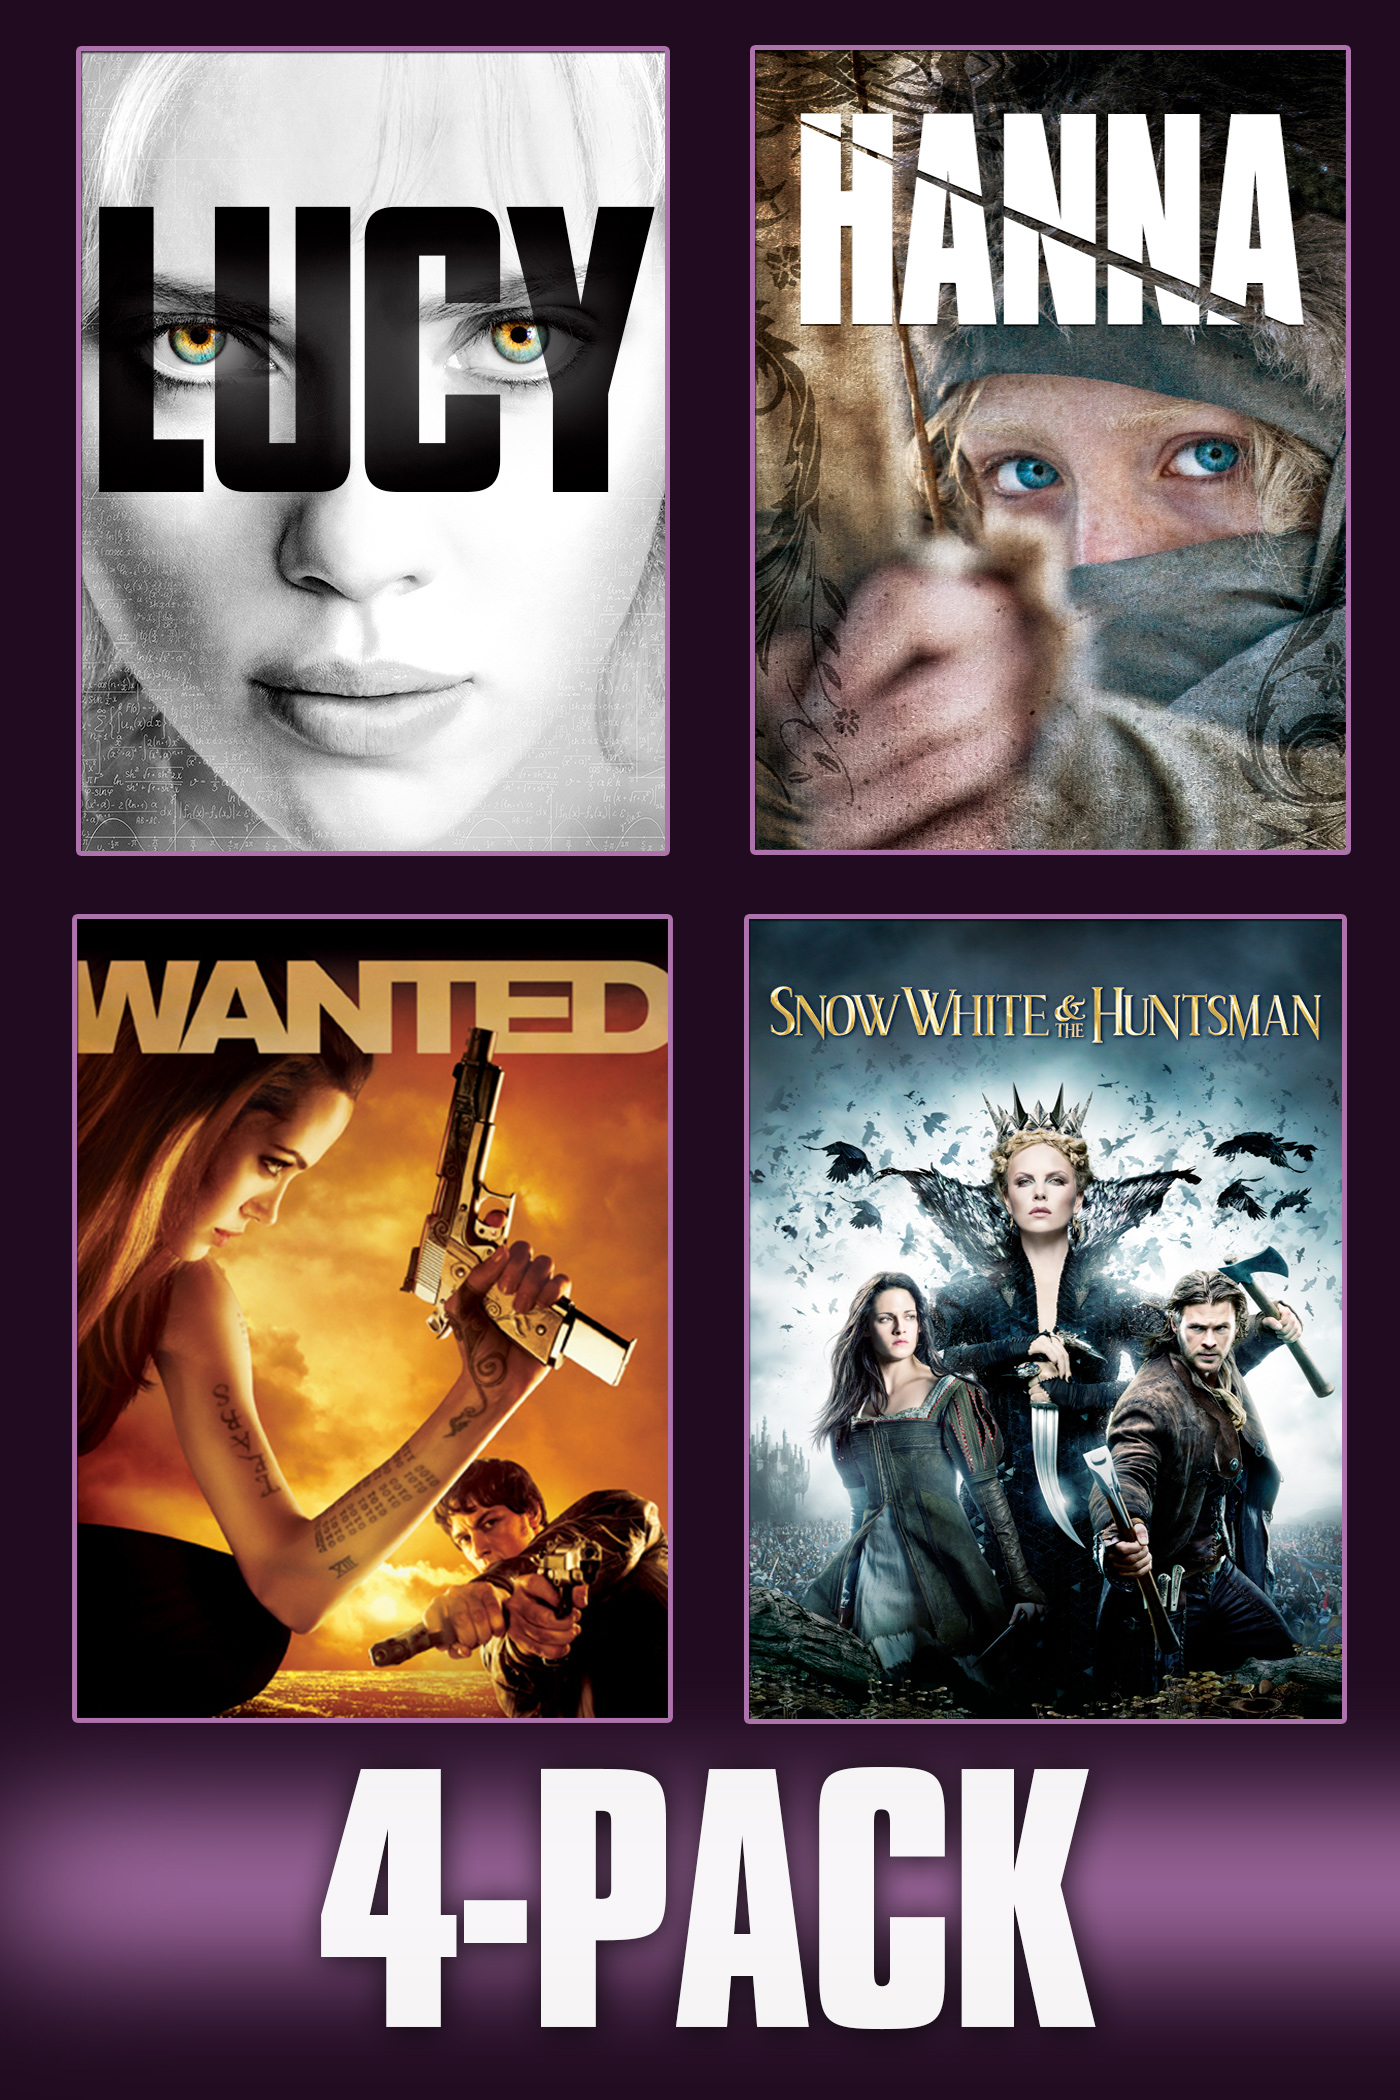 Lucy, Hanna, Wanted, & Snow White and the Huntsman 4-Pack